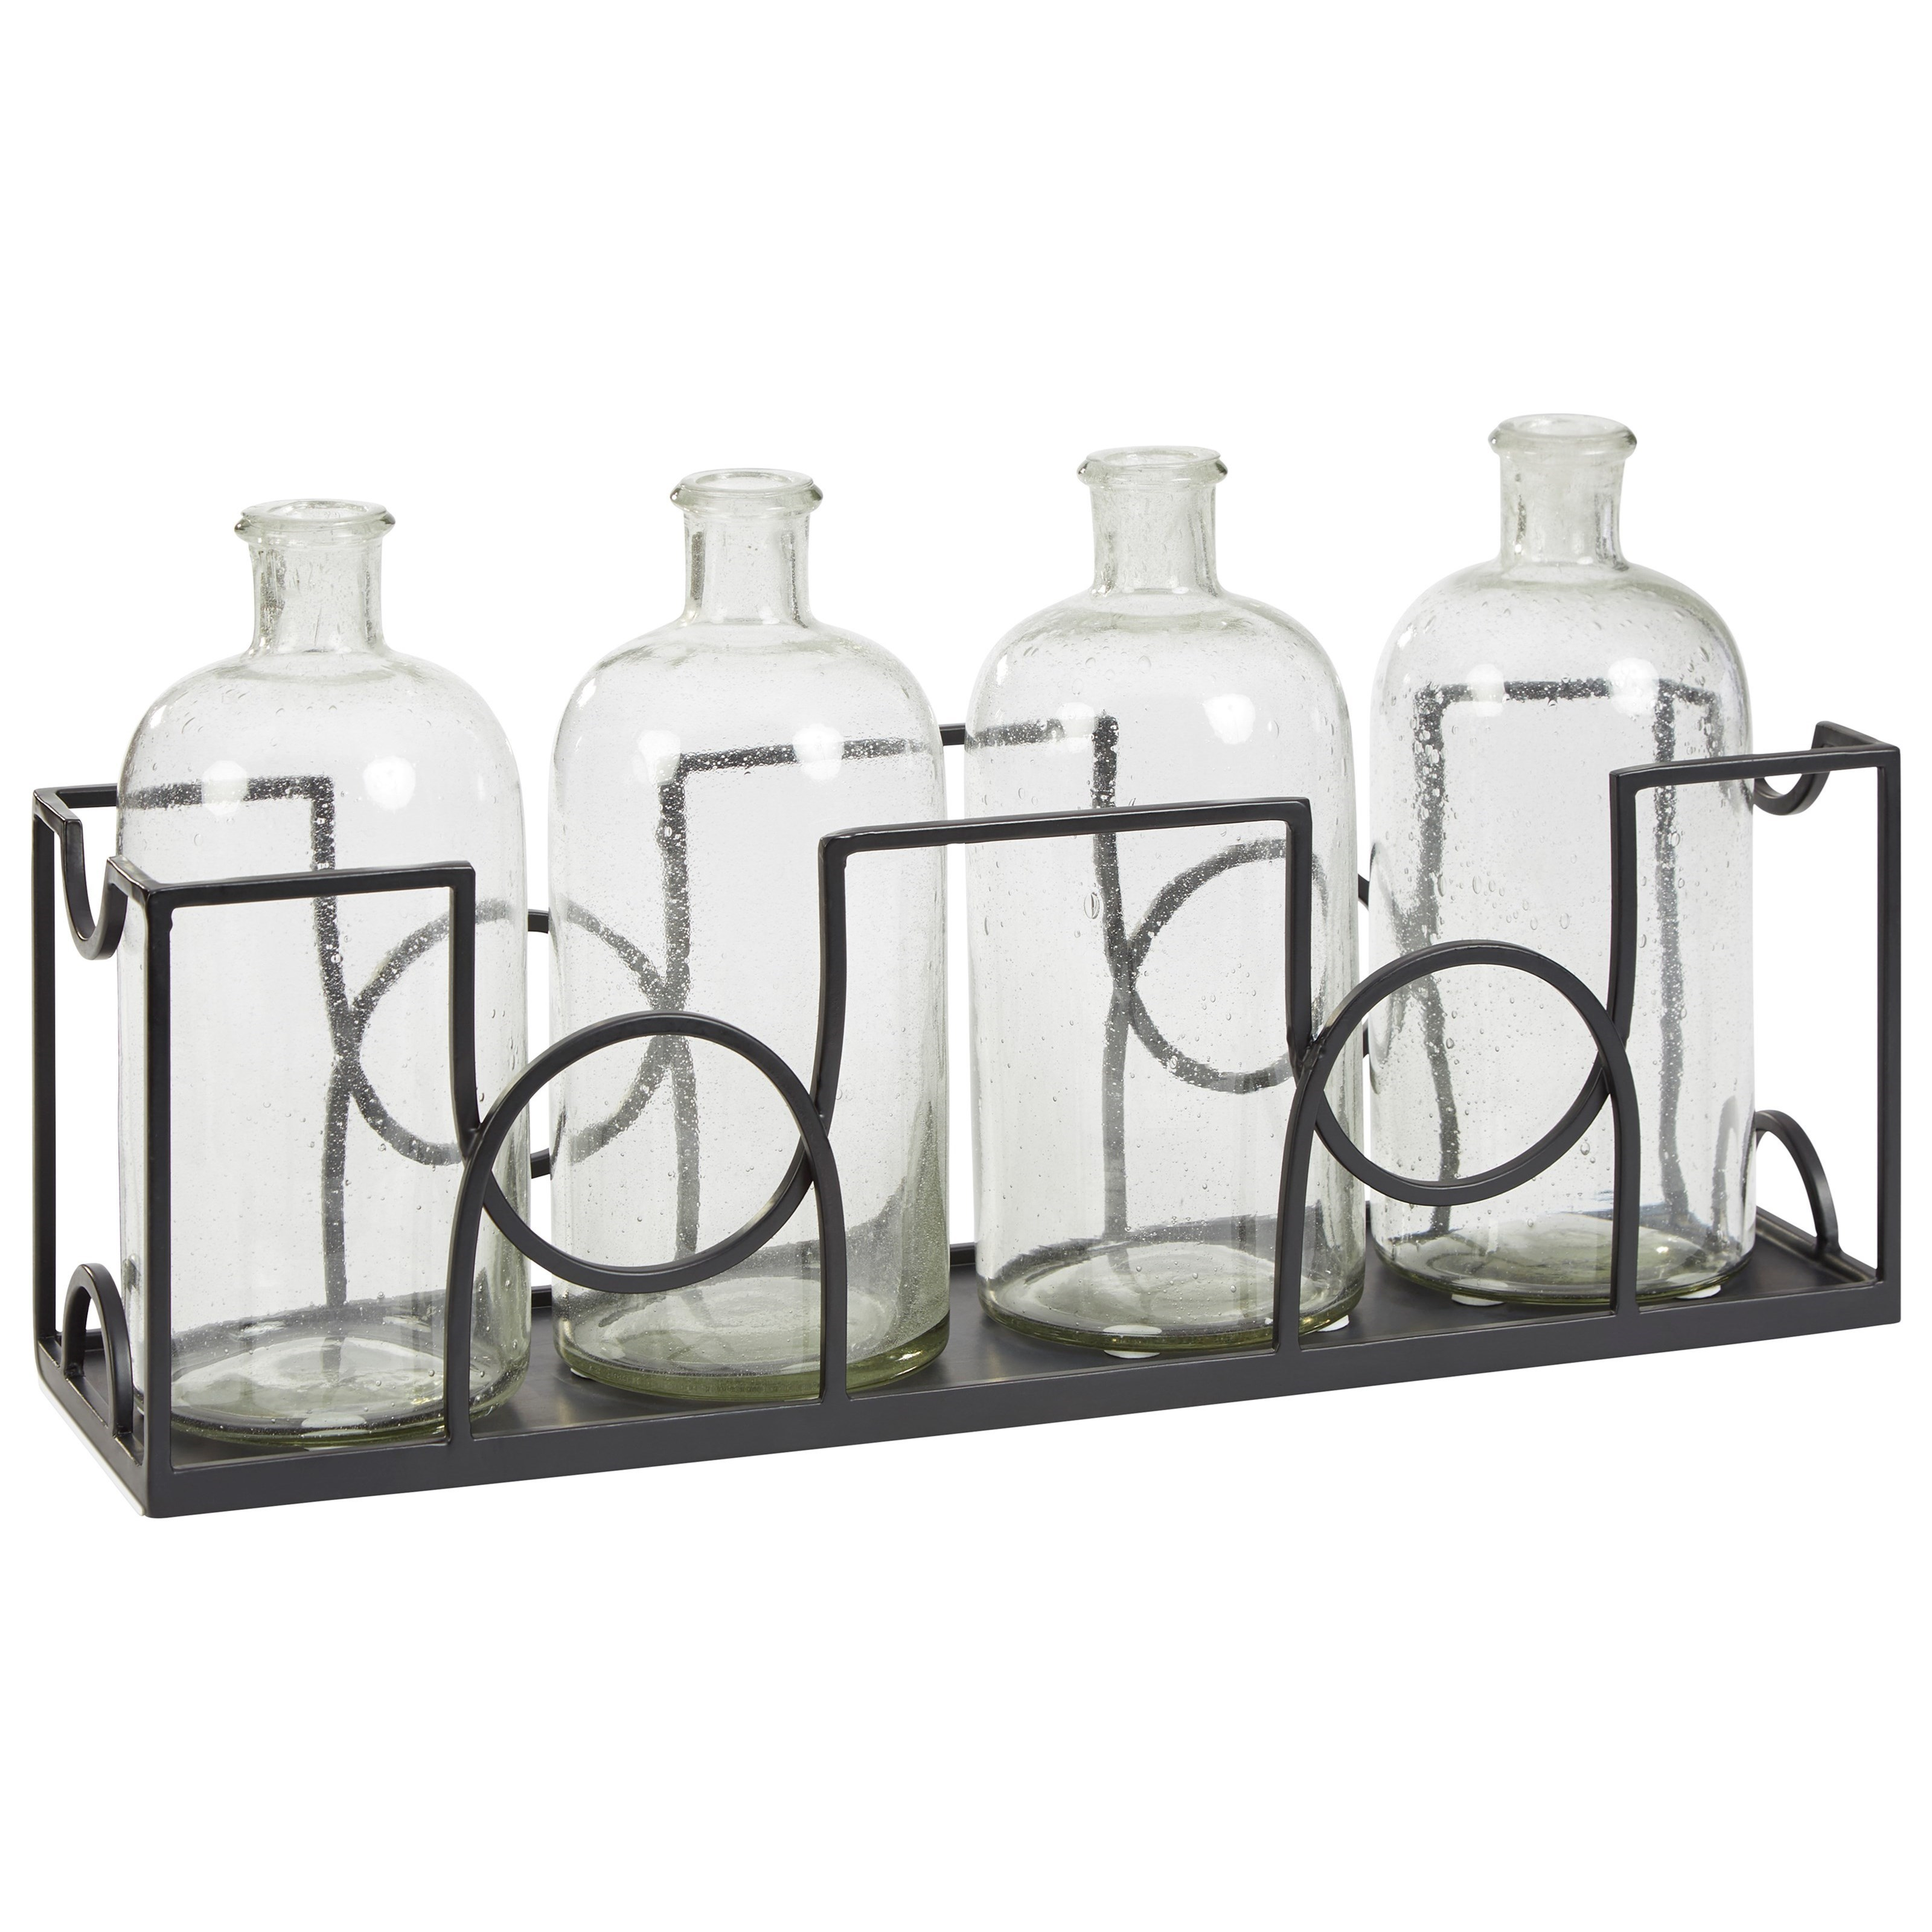 Dmitri Clear/Black Accessory Set with 4 Vases and Tray